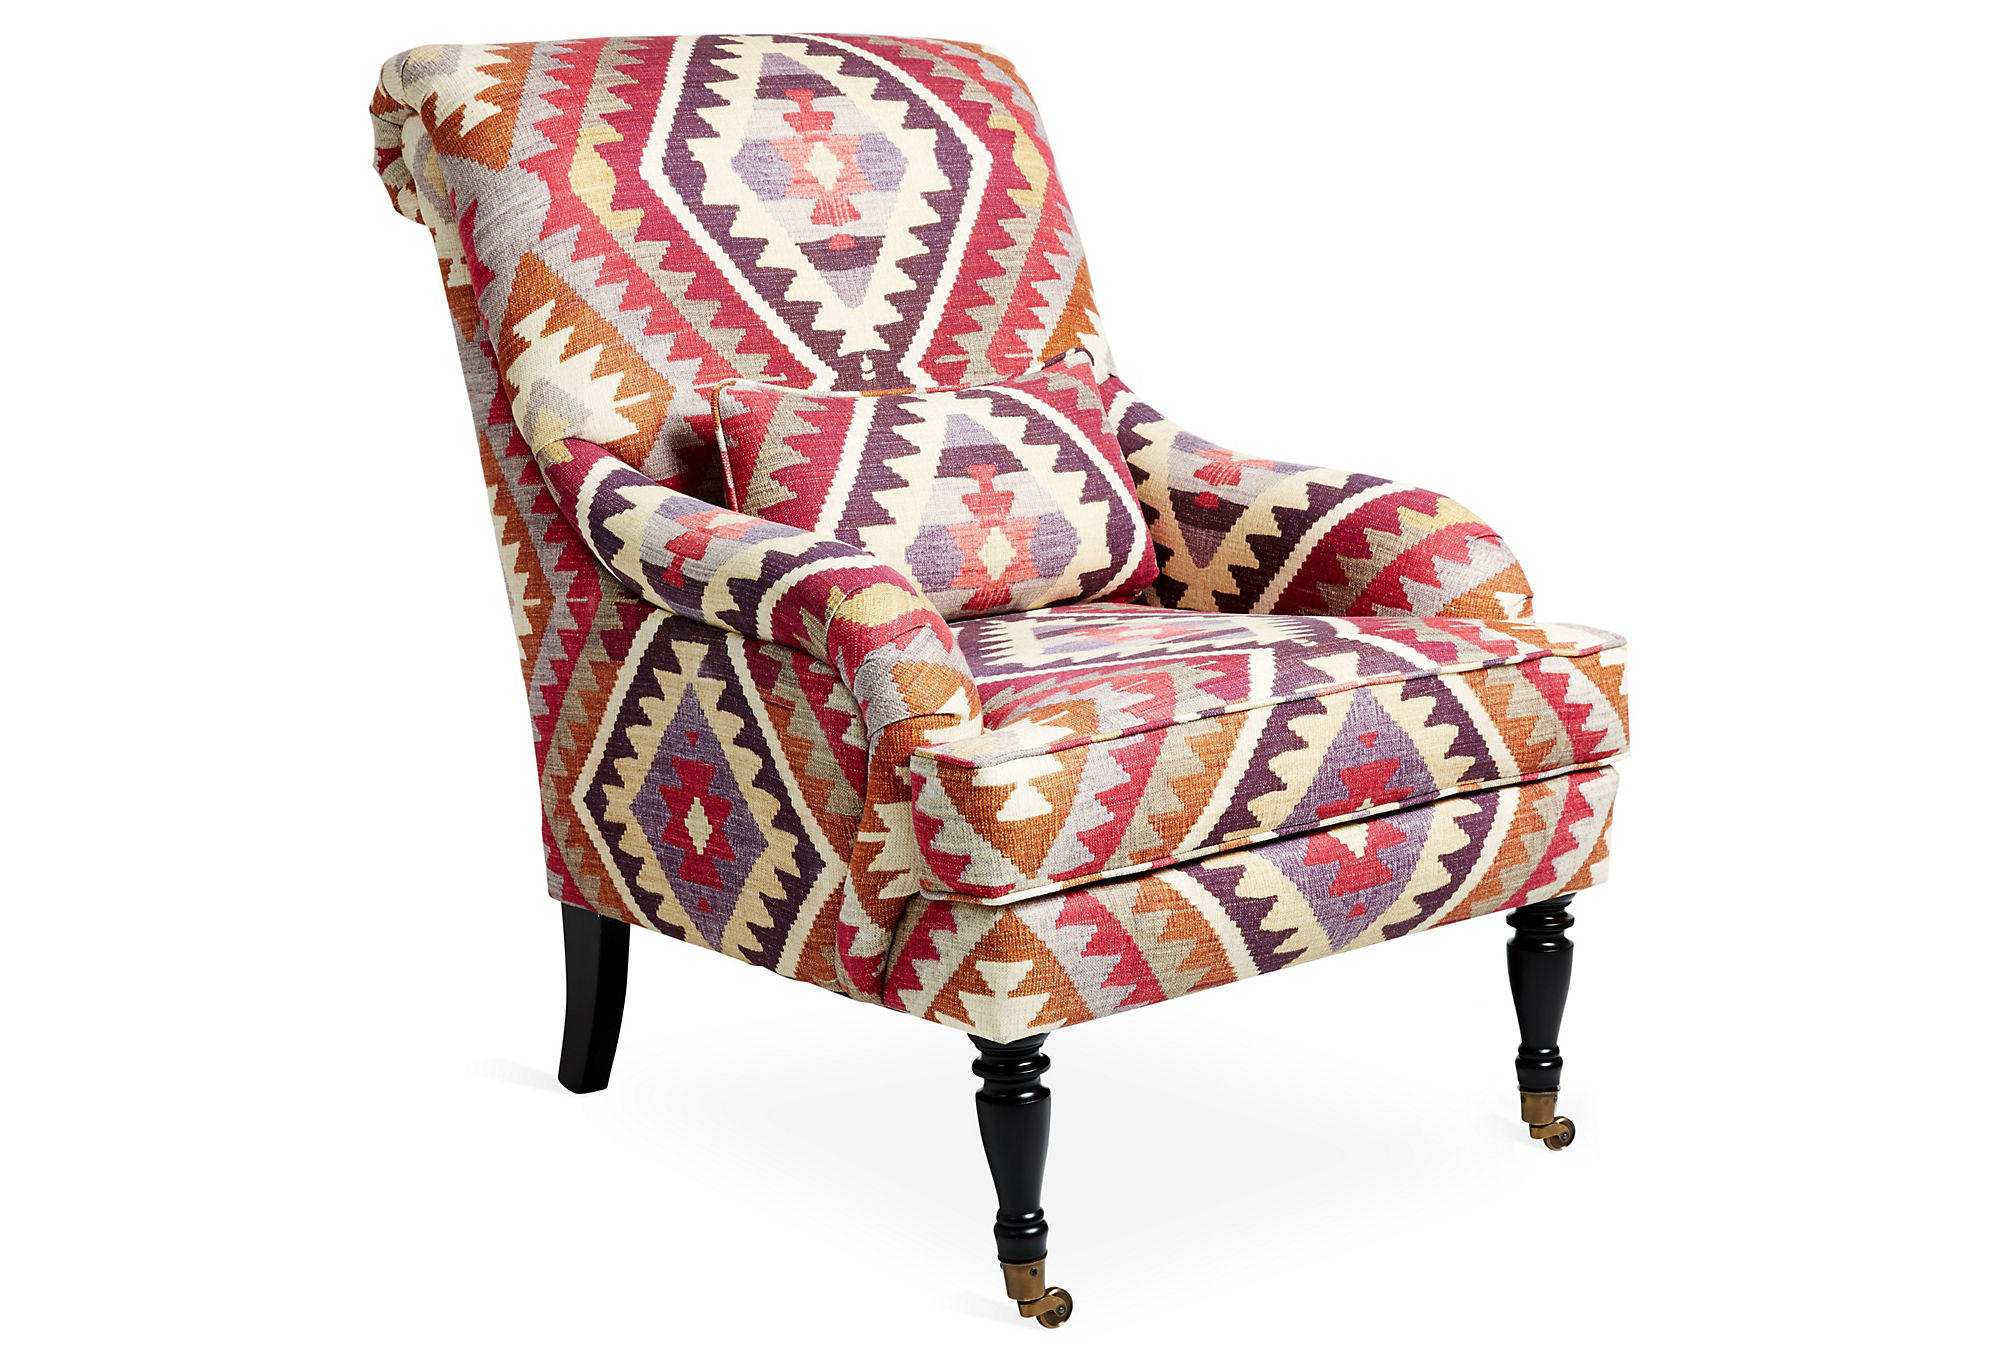 Aztec Chair Oxford Chair Magenta Aztec Accent And From One Kings Lane